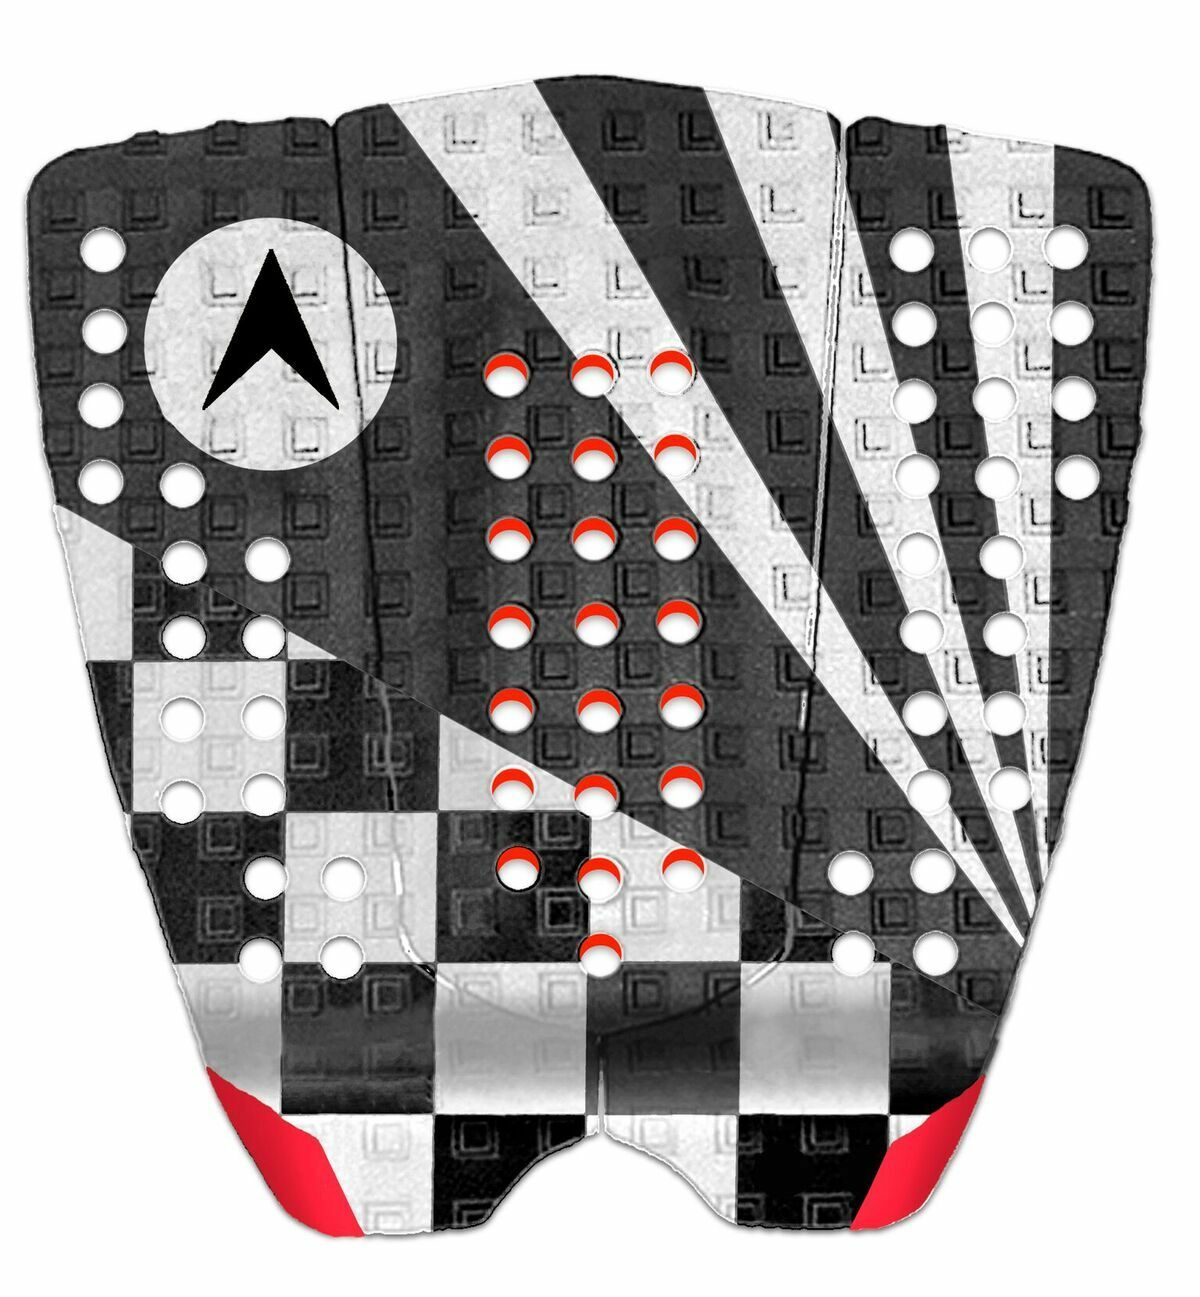 Astrodeck John John Surfboard Tail Pad In White-Grey Red From Astodeck